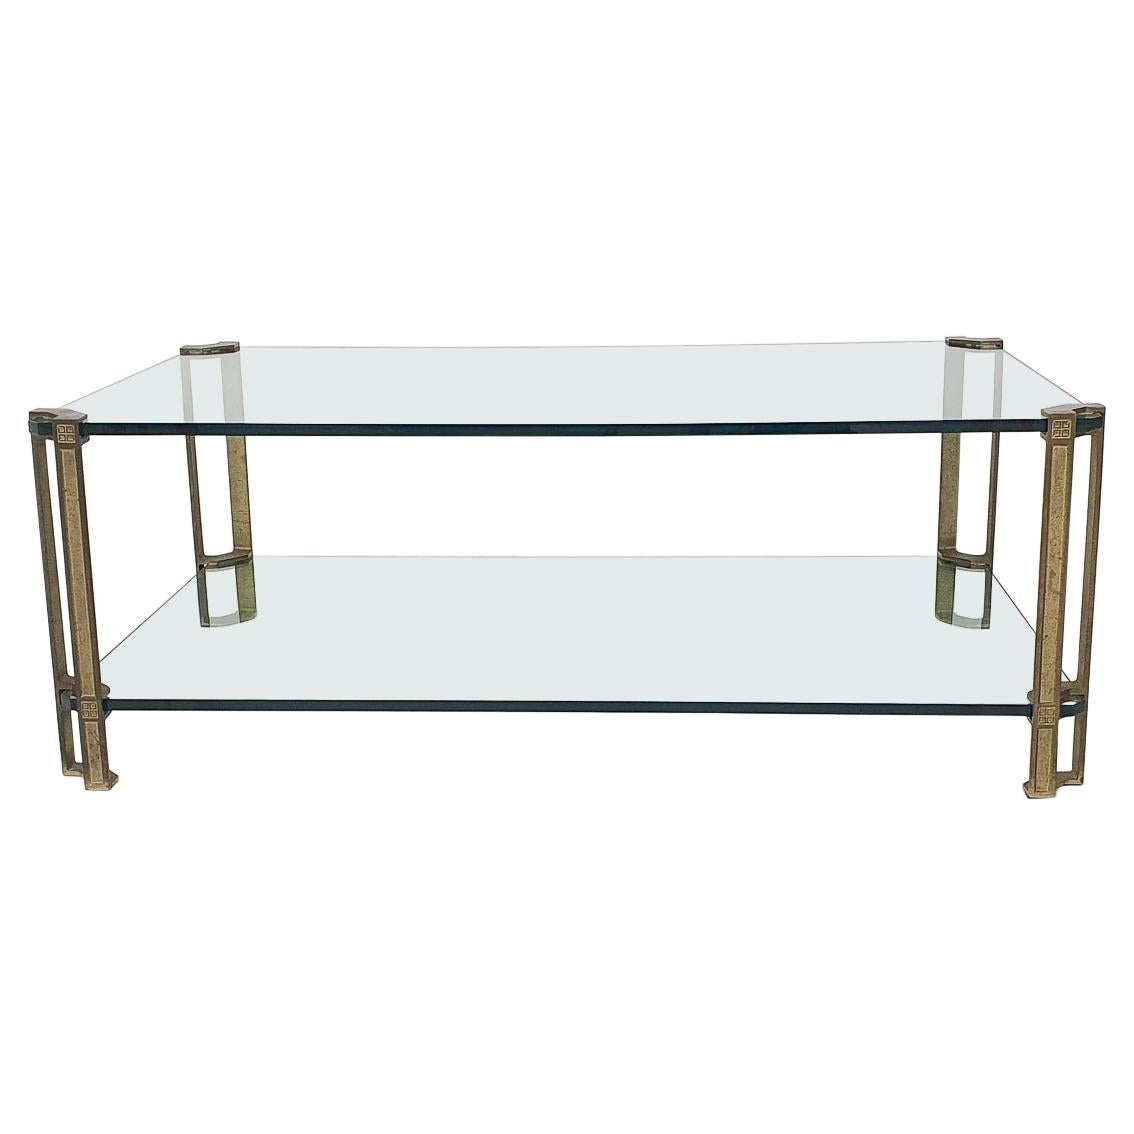 Peter Ghyczy for Ghyzcy Brass and Glass Coffee Table, 1970's